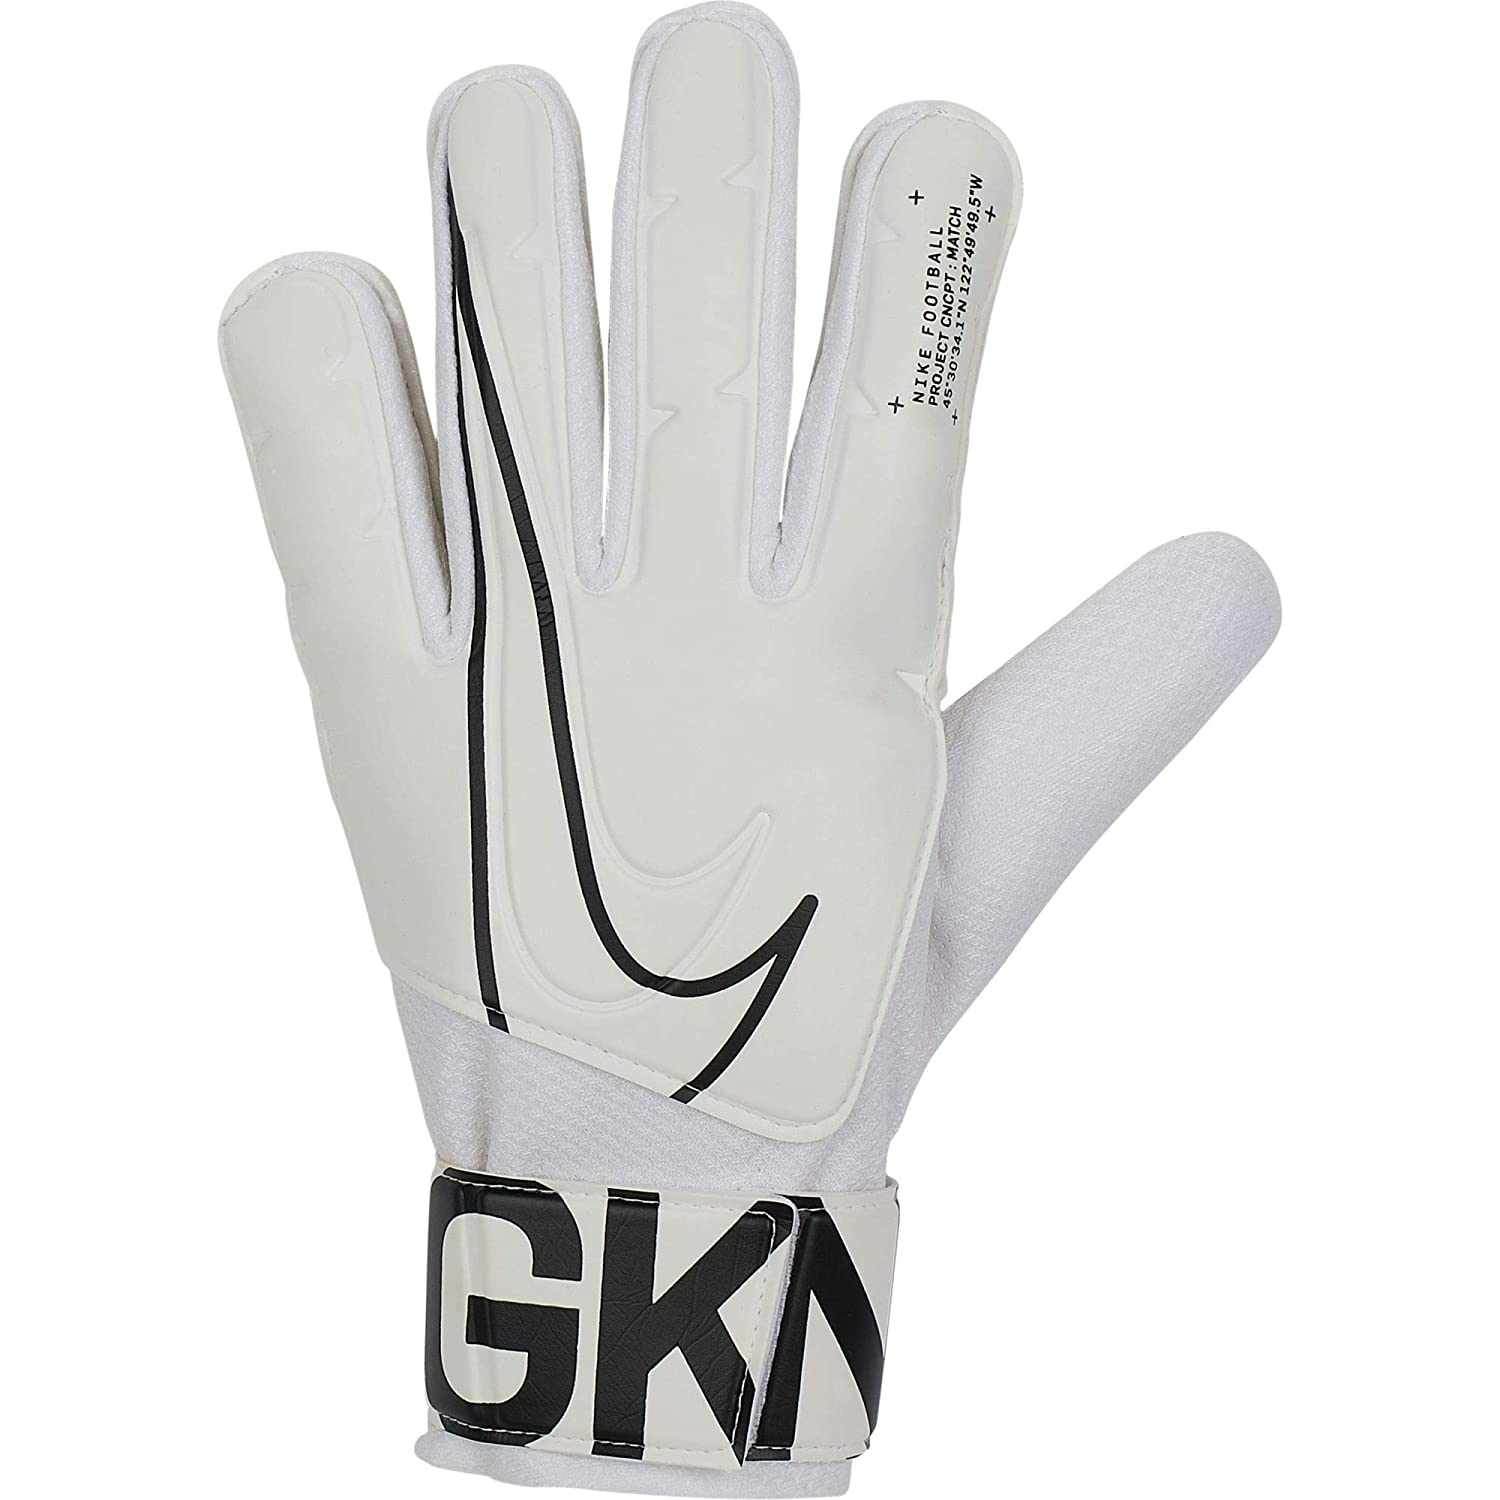 Nike Nk Gk Match-fa19 Soccer Gloves Unisex Adulto